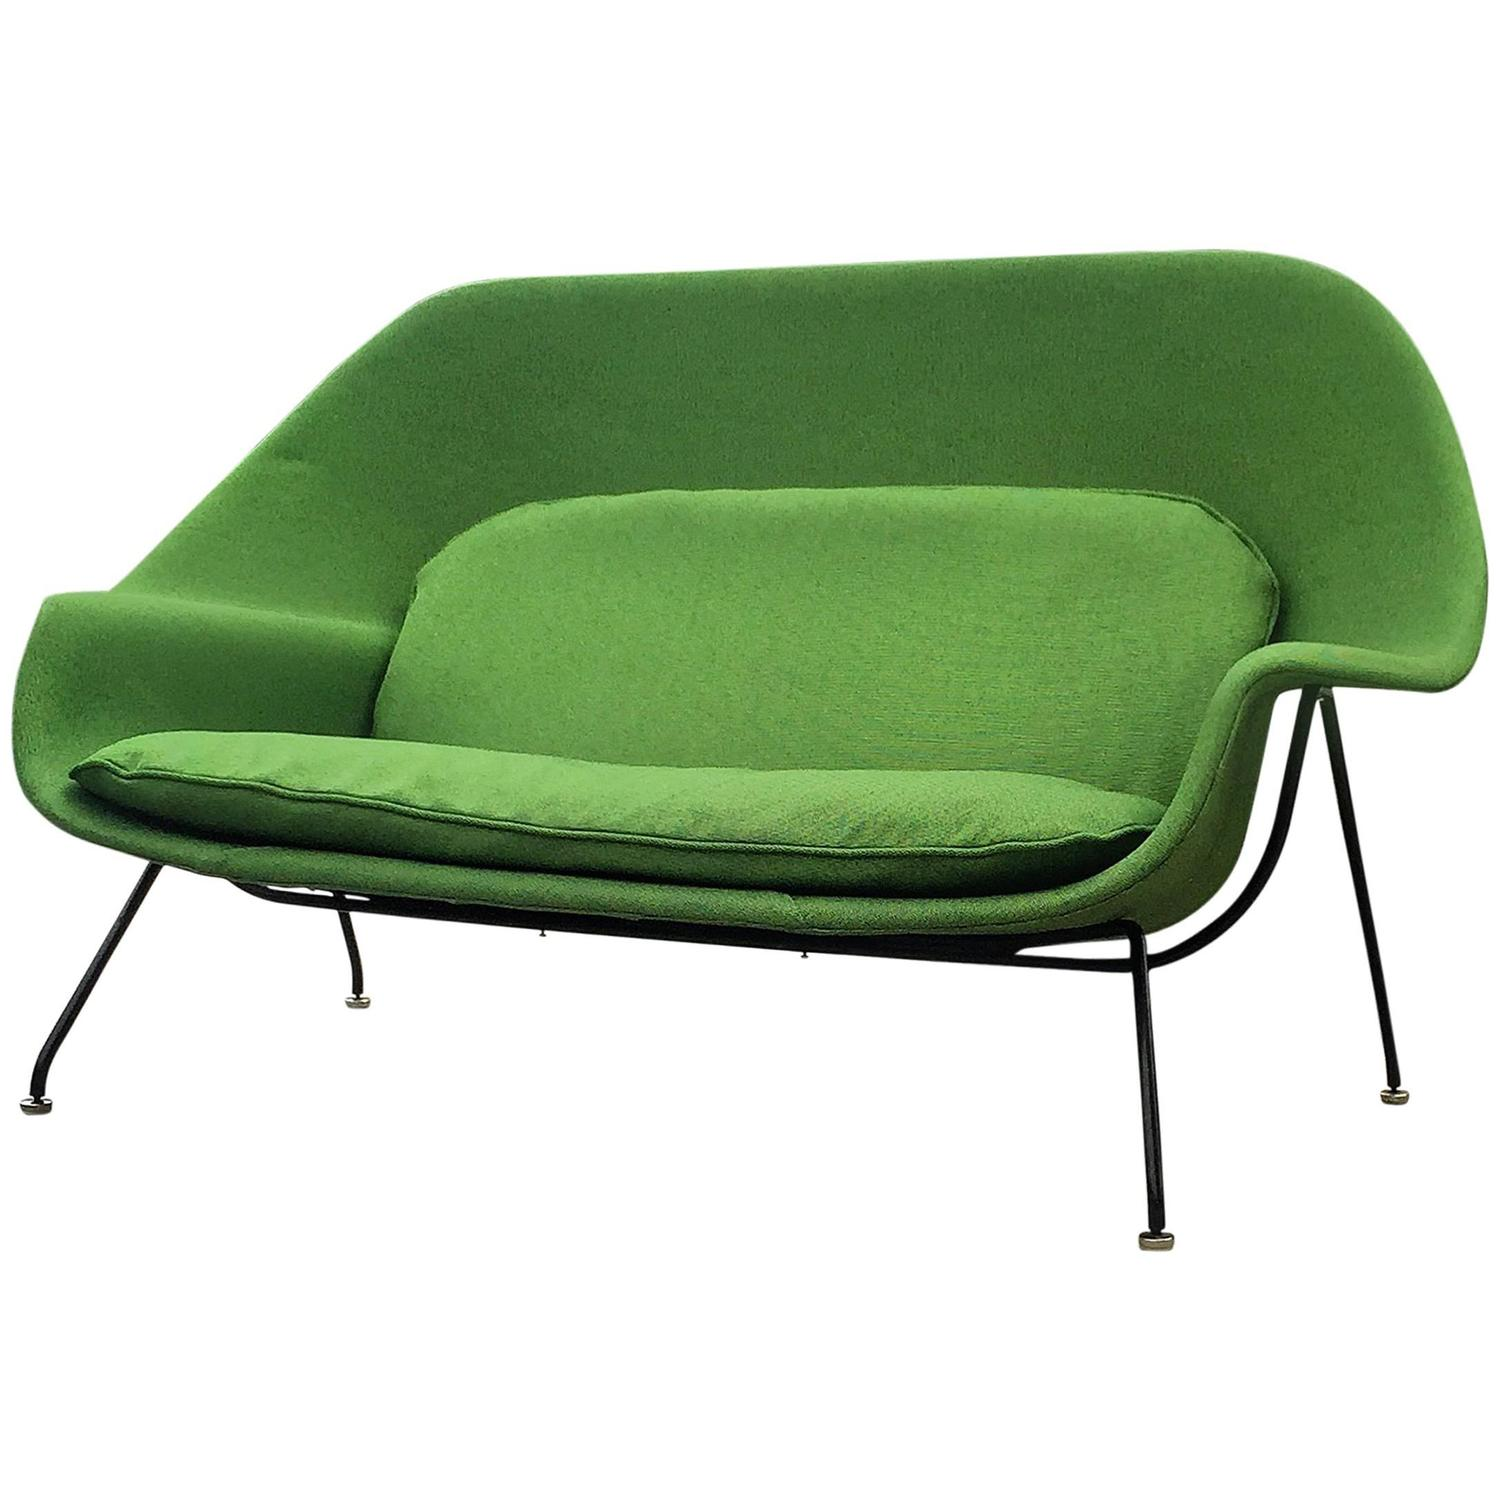 Early vintage eero saarinen for knoll womb settee sofa for sale at 1stdibs - Vintage womb chair for sale ...